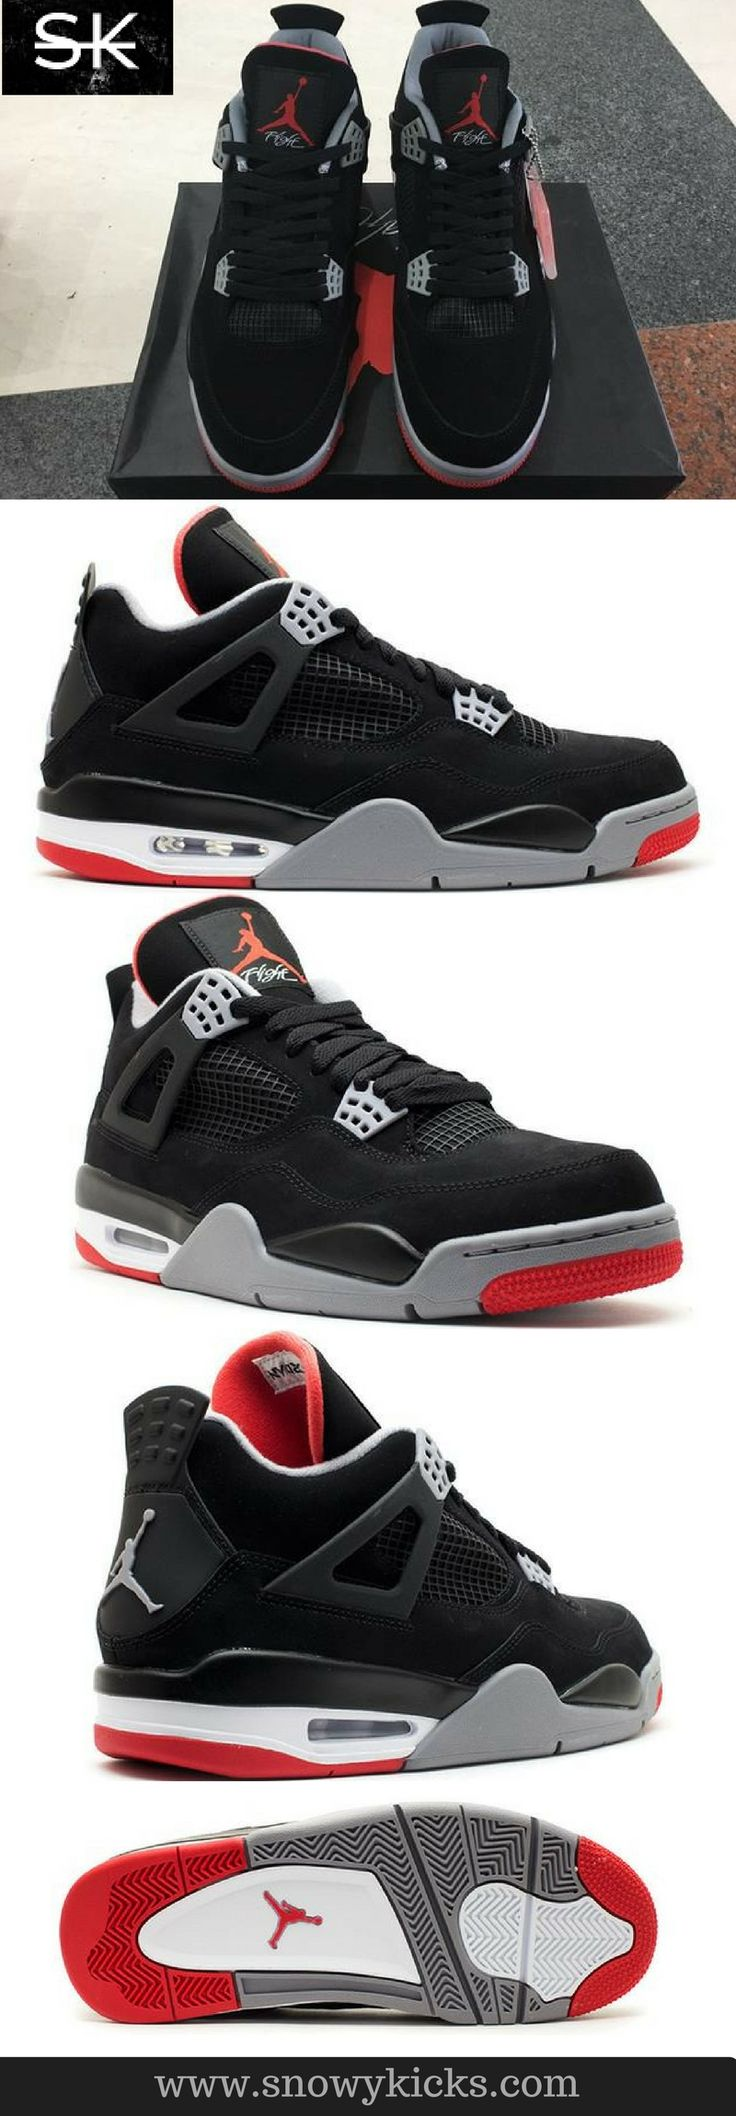 """Air Jordan IV """"Bred"""": The """"Bred"""" model features a Jumpman logo on the back and on the sole. #Sneaker #shoes #run 